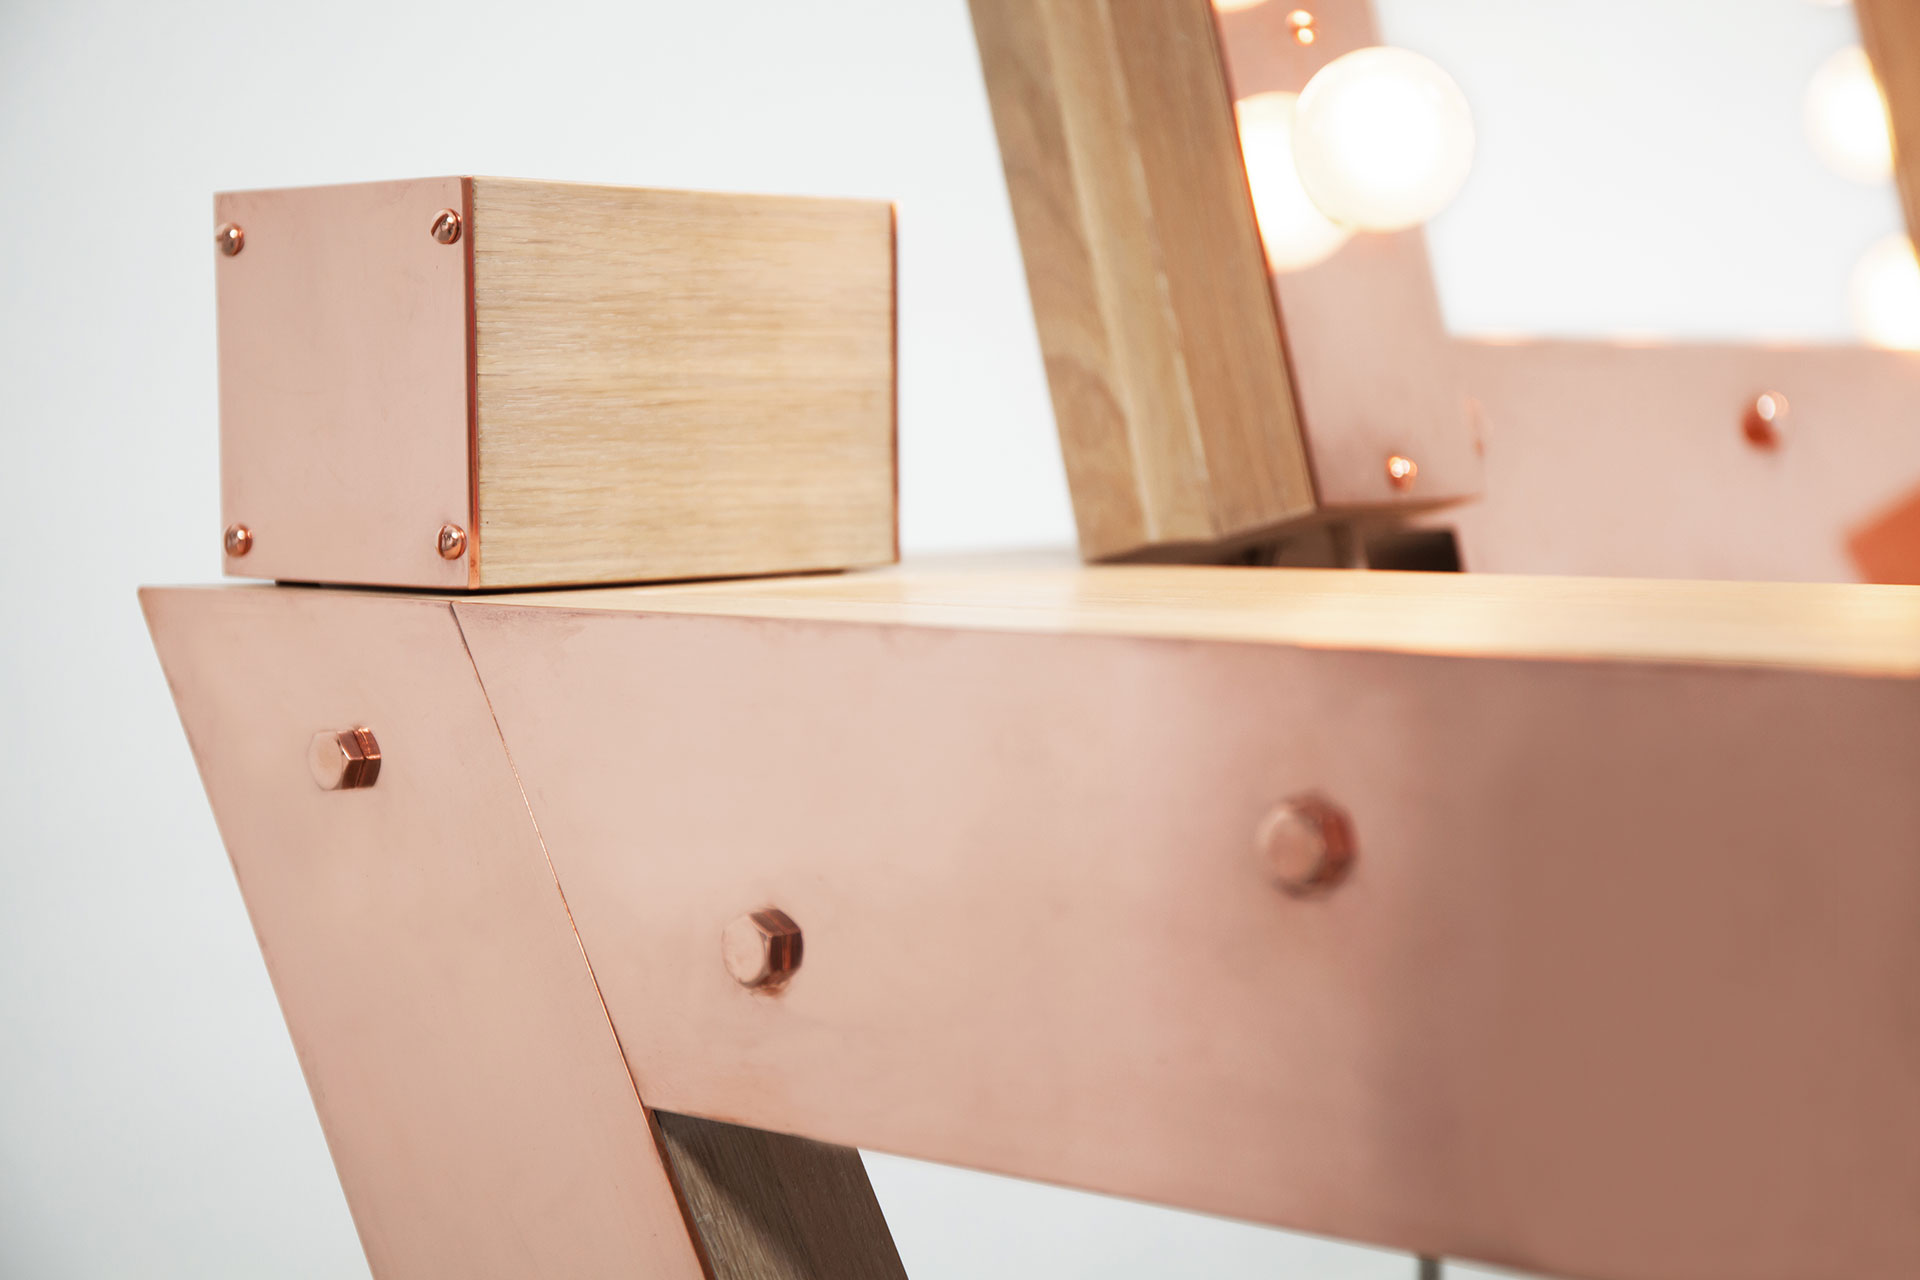 Copper and wood vanity table inspired by loft design